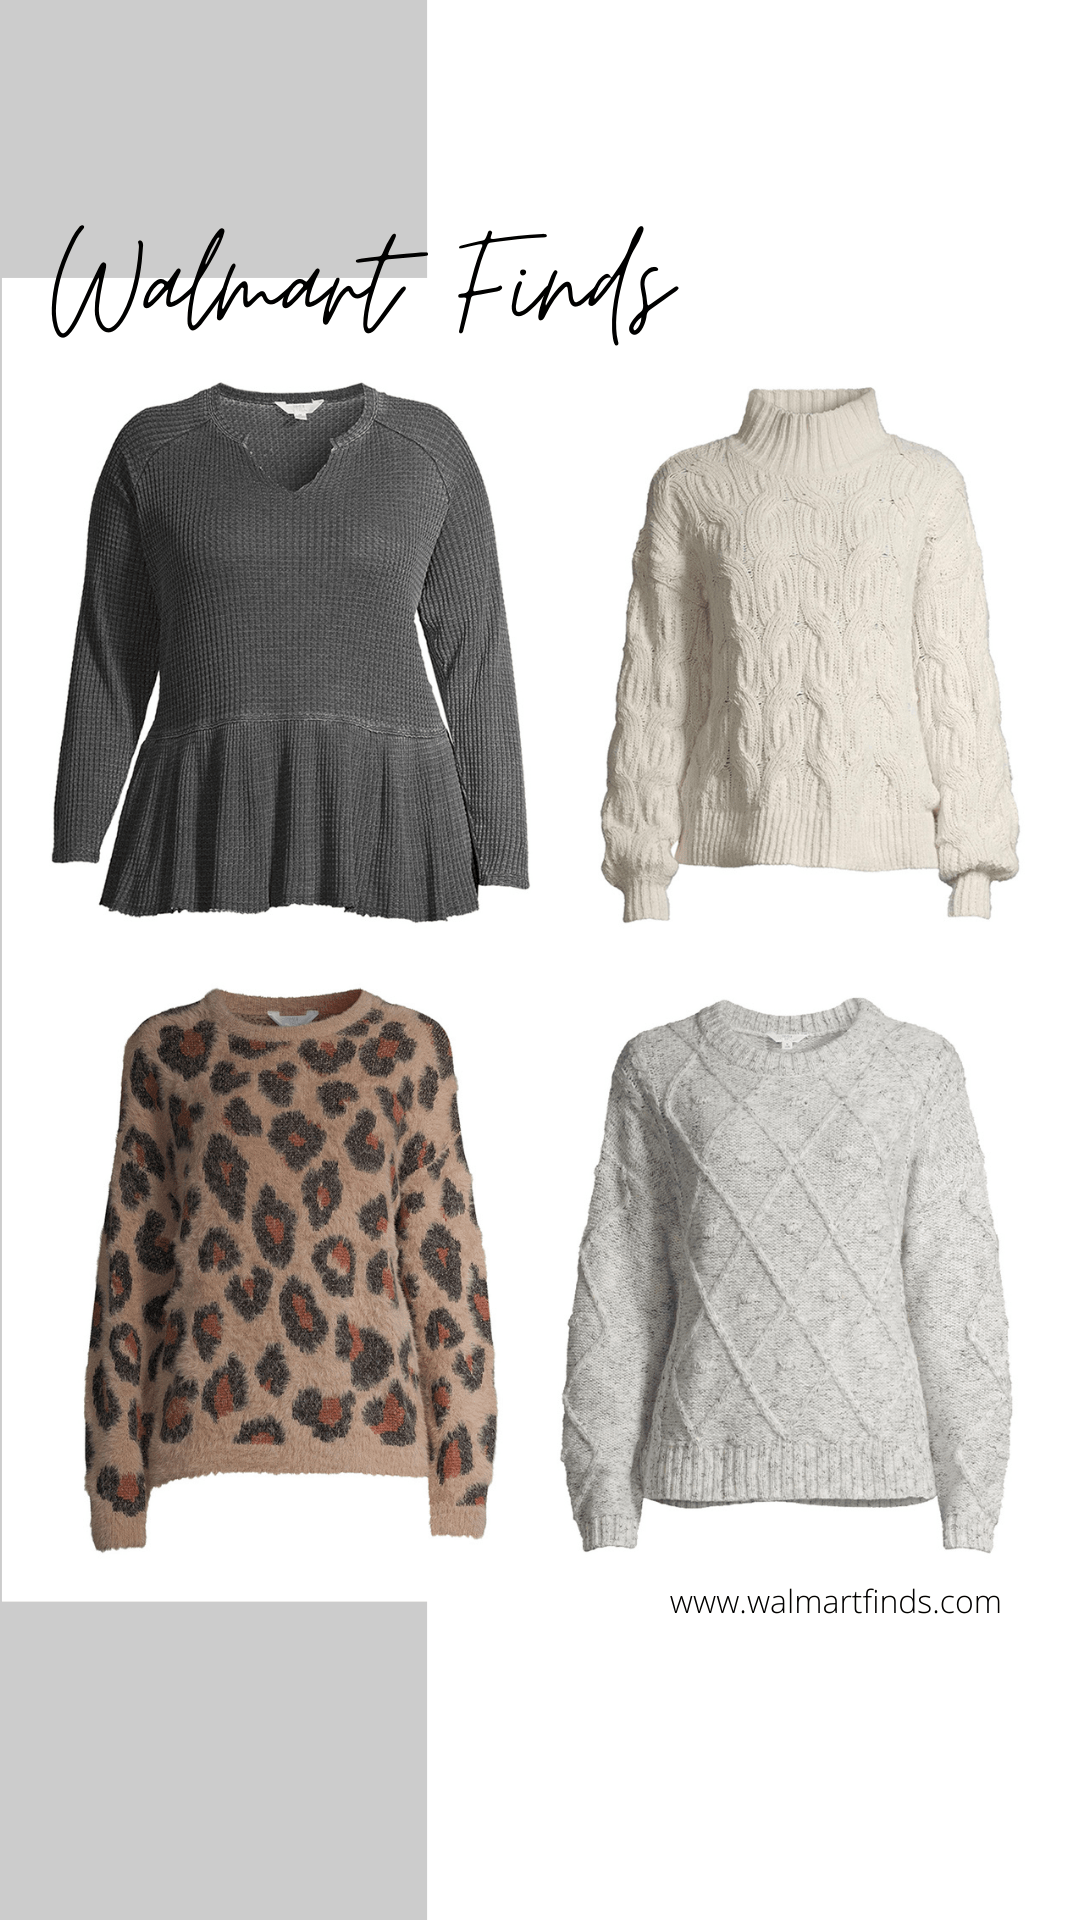 new time and tru sweater arrivals and plus size peplum